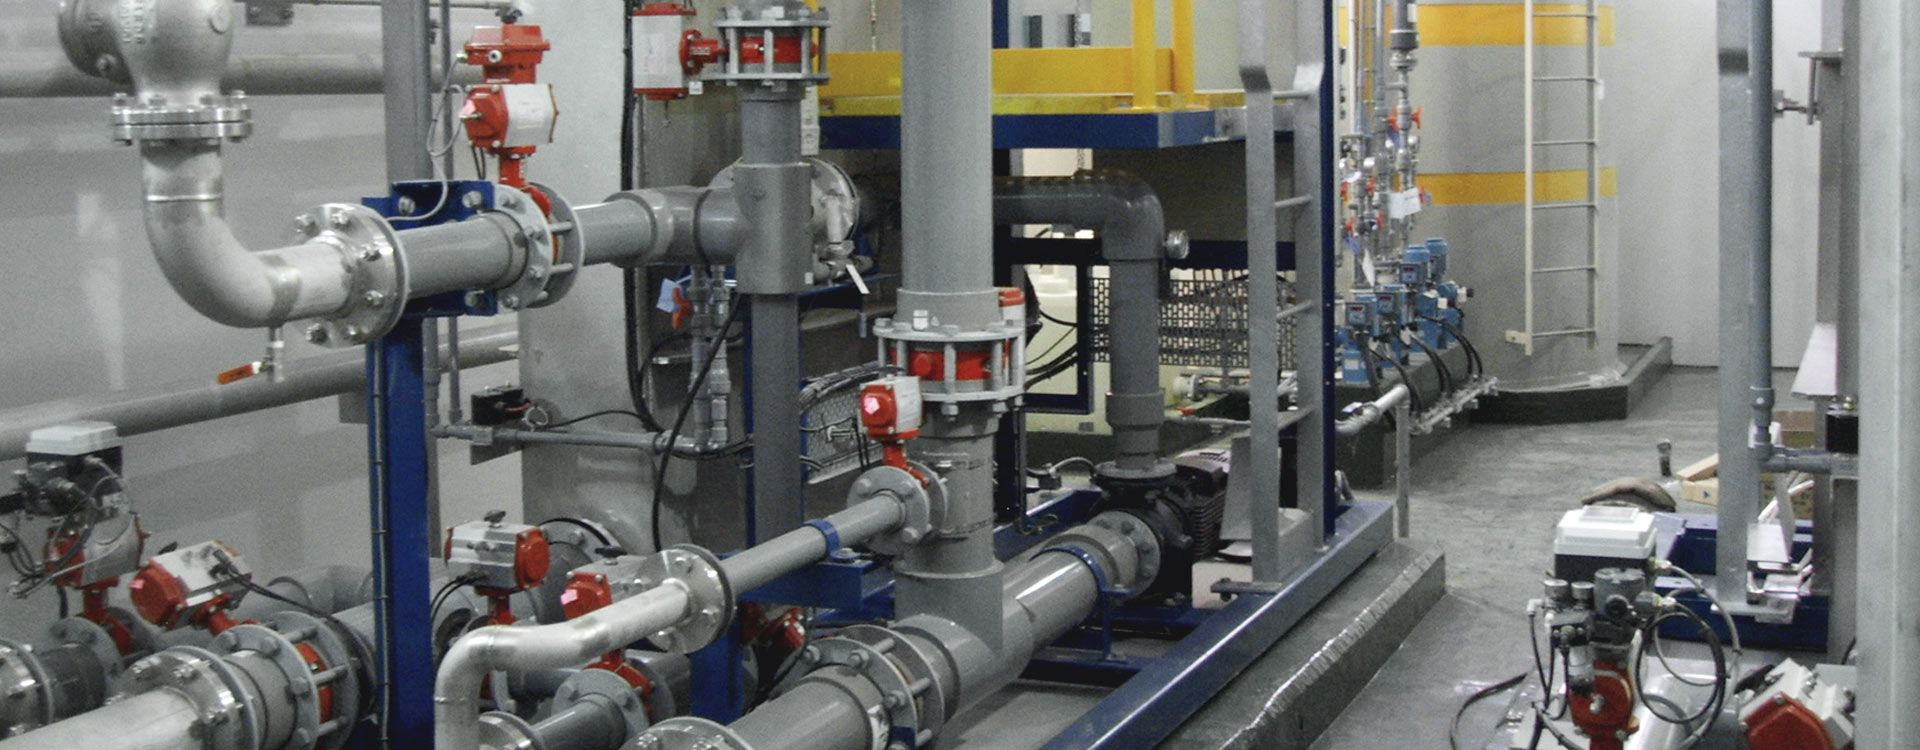 Water and Wastewater Treatment Process and Infrastructure | WSP